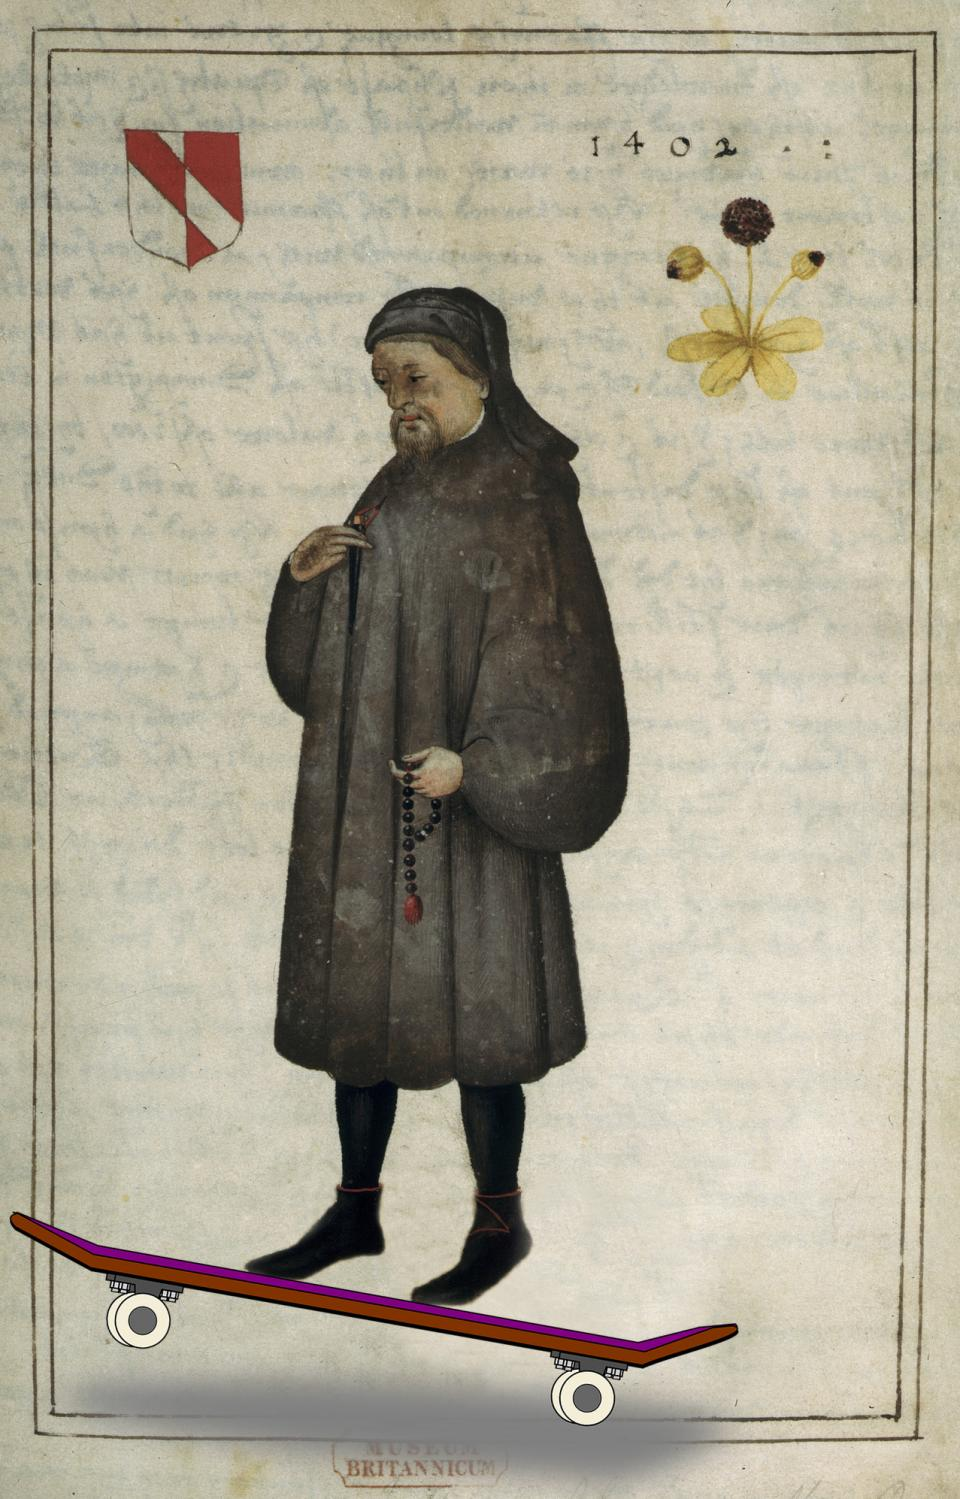 Illustration of Chaucer on a skateboard